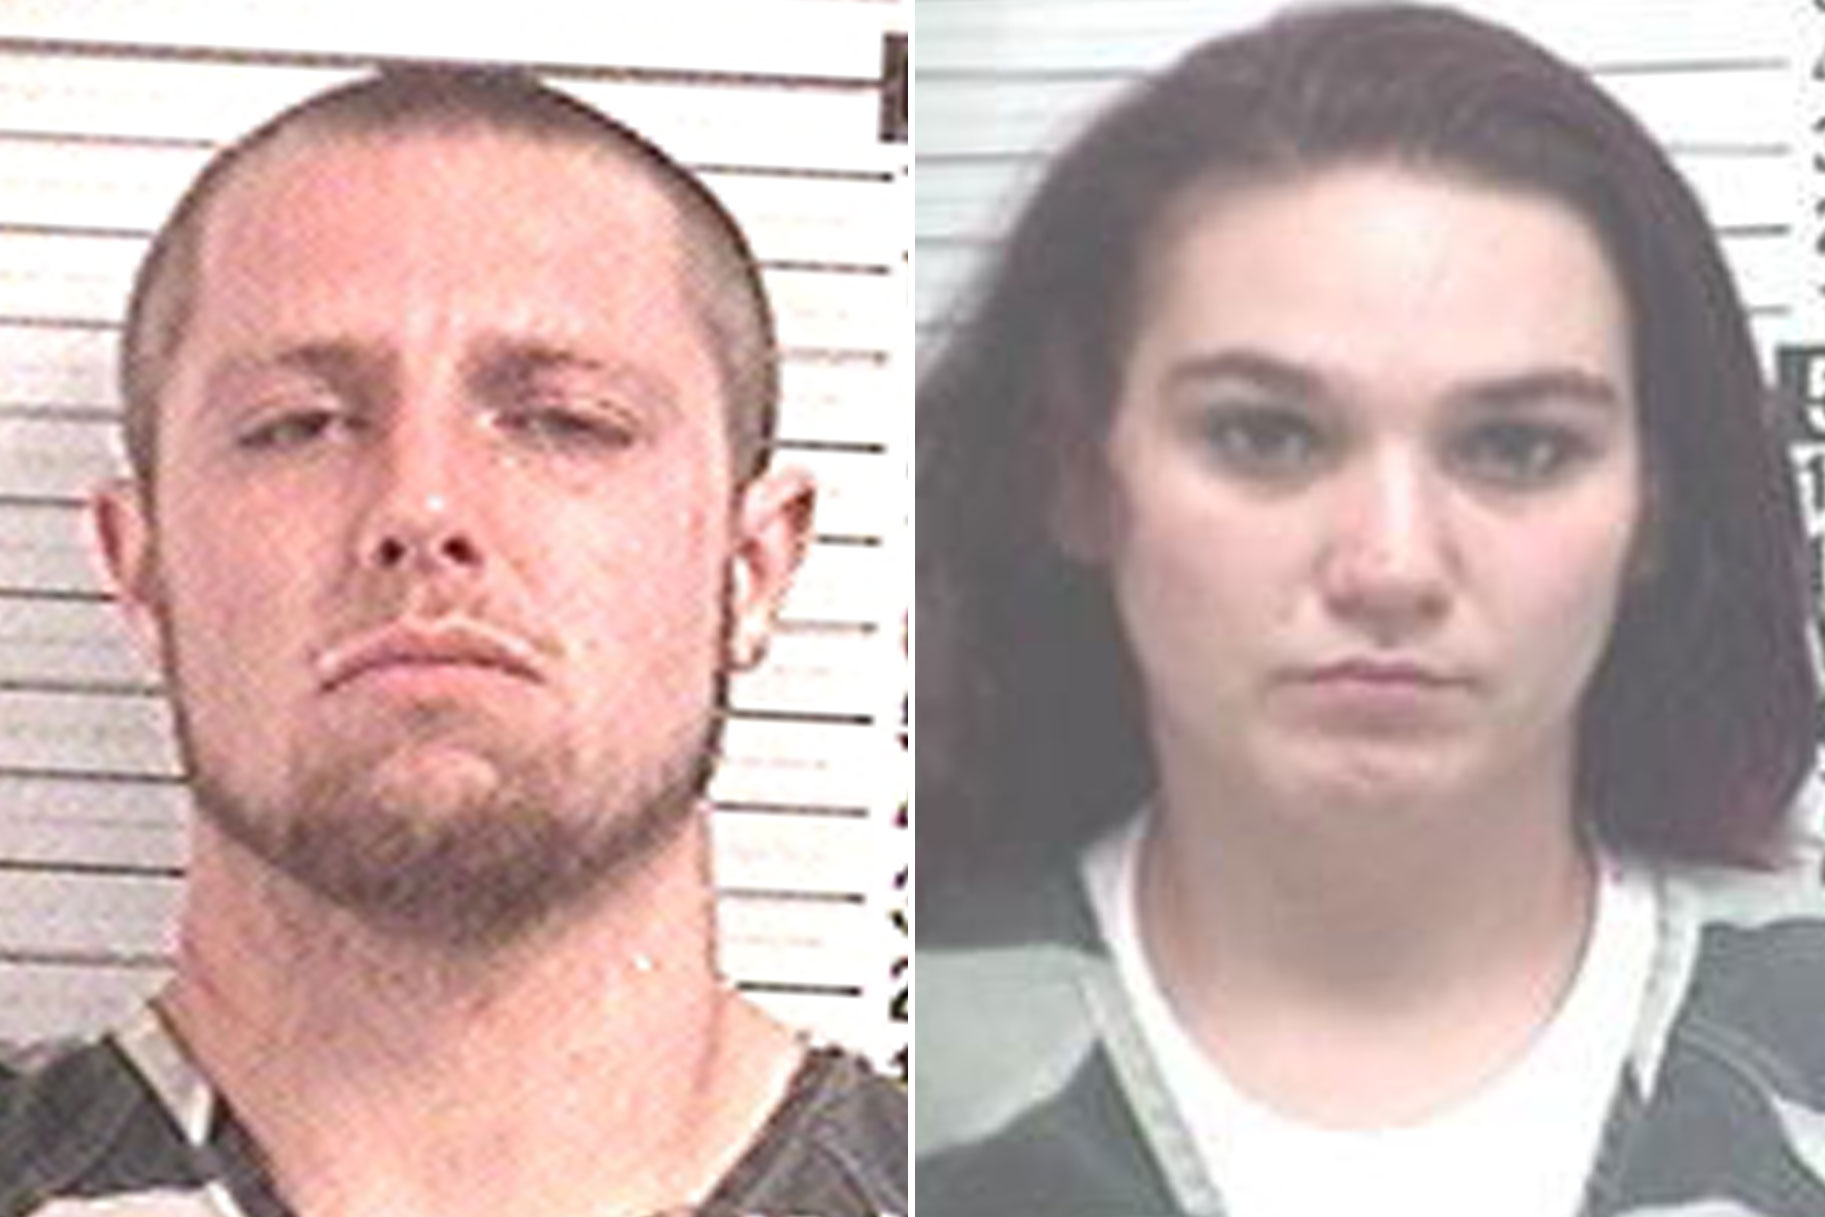 Couple Arrested For Drug Use After Passing Out In Florida